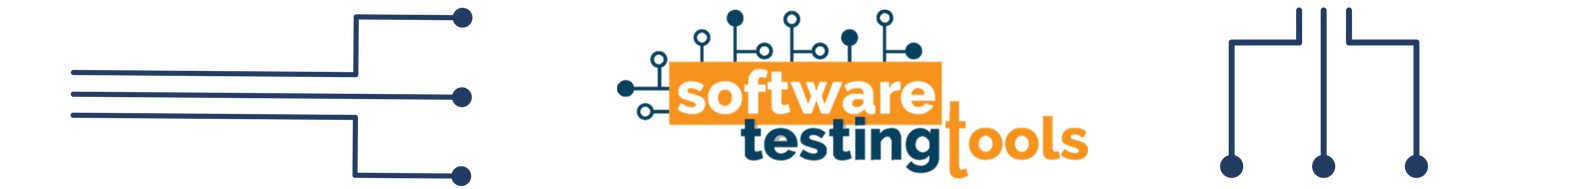 Softwaretestingtools.com